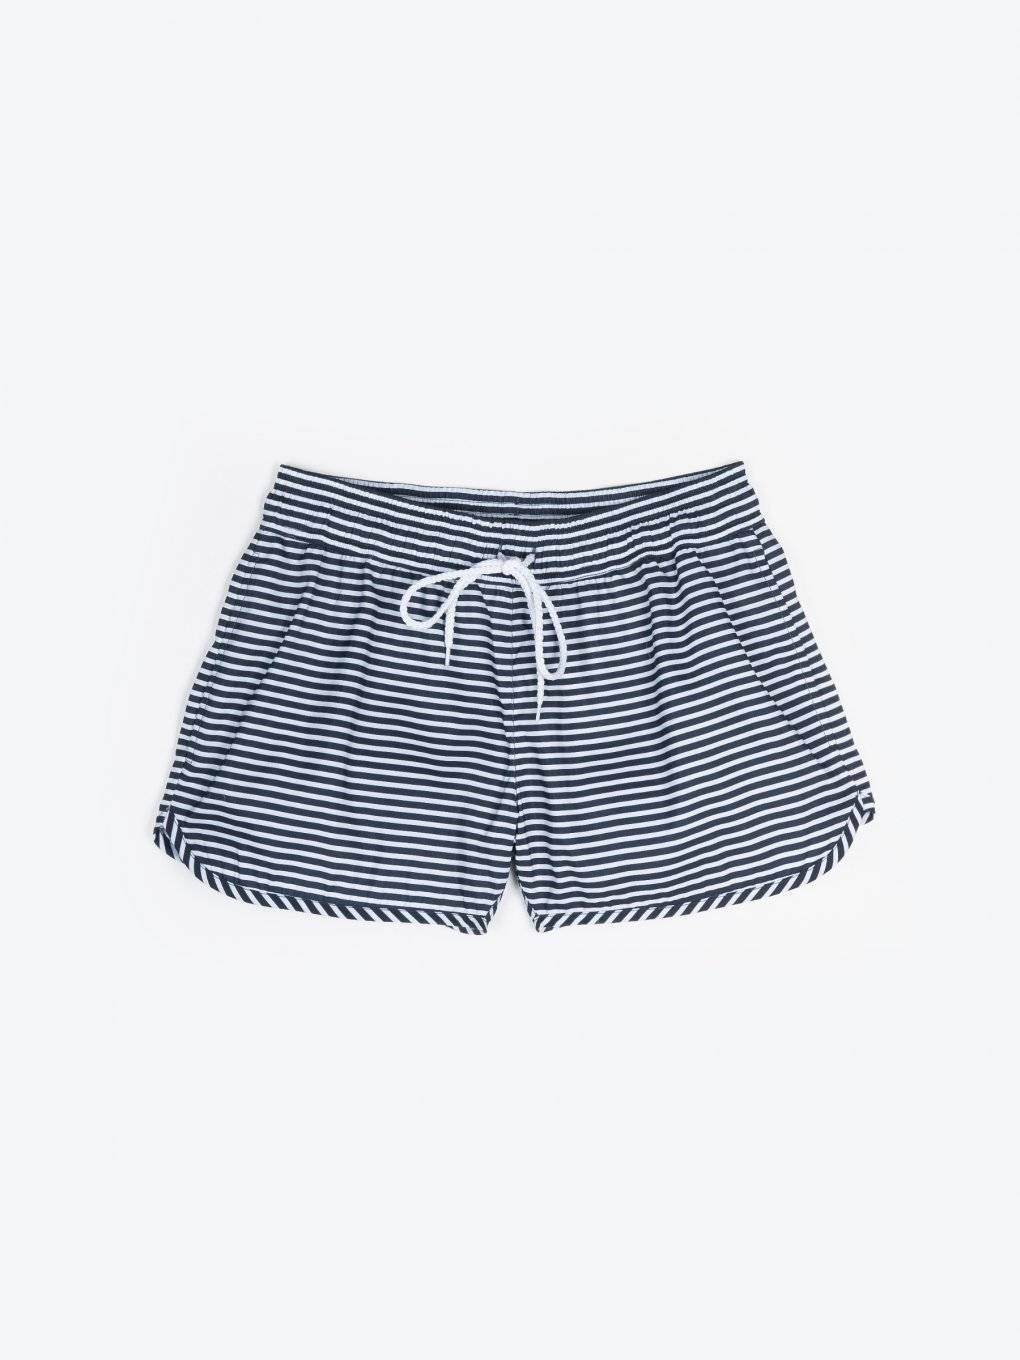 Striped shorts with pockets